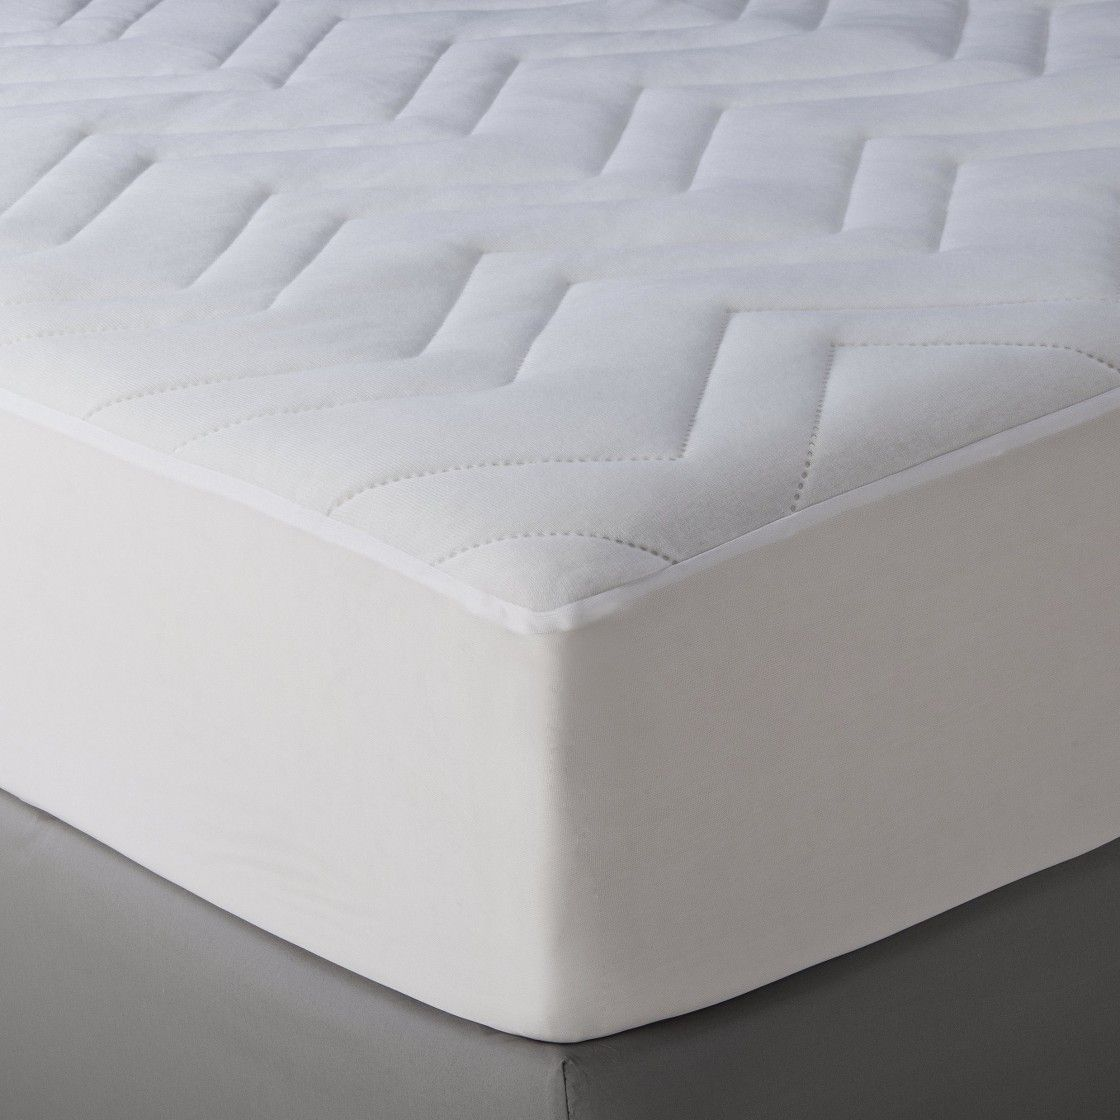 Room Essentials Twin Xl Mattress Pad Basic White